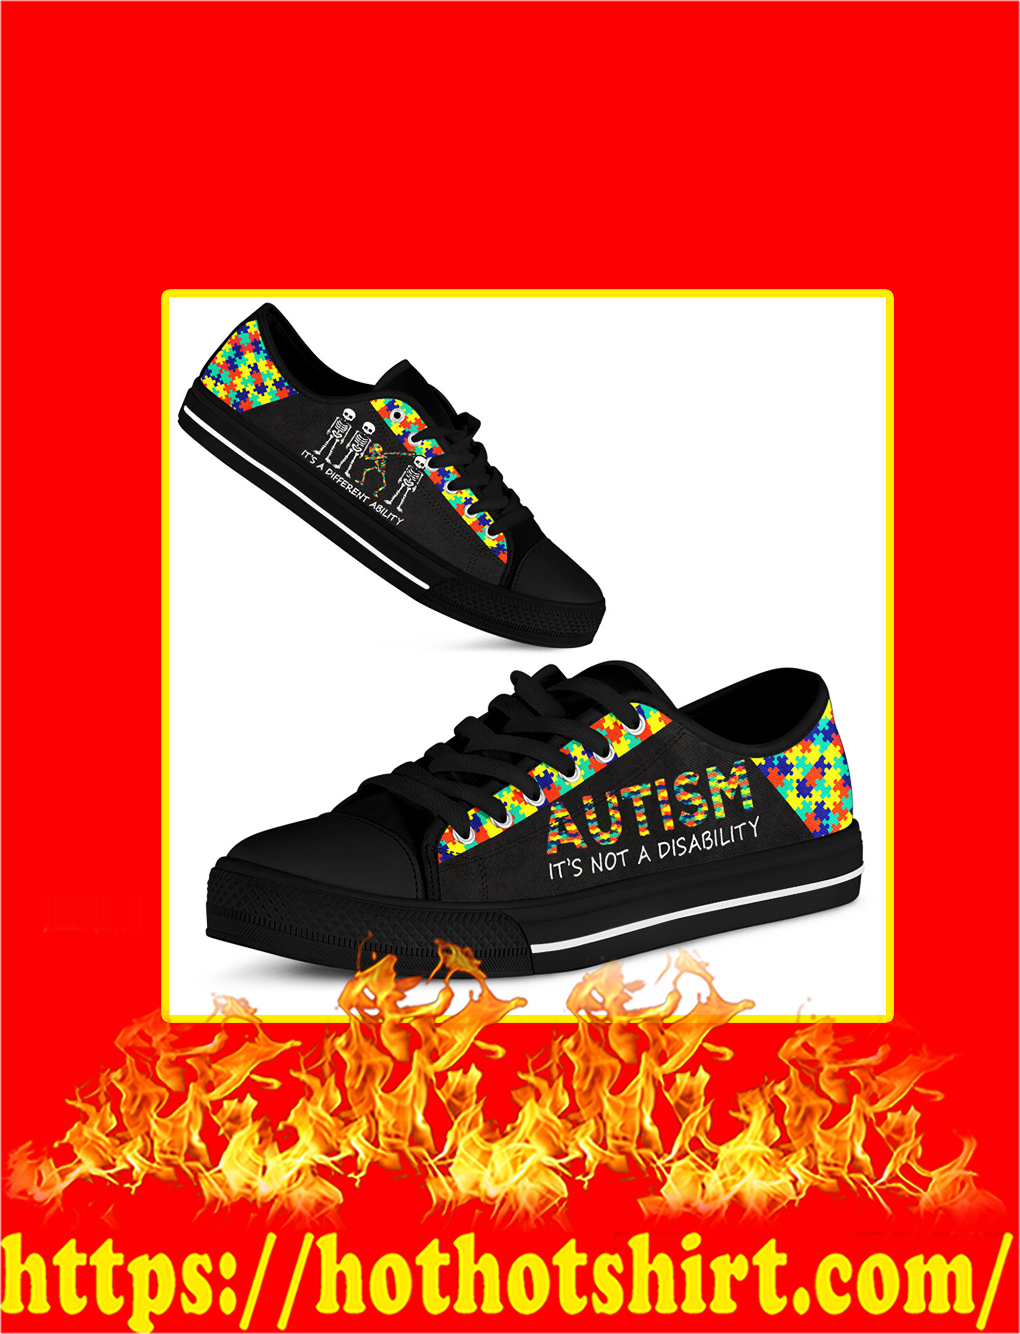 Autism It's Not A Disability Low Top